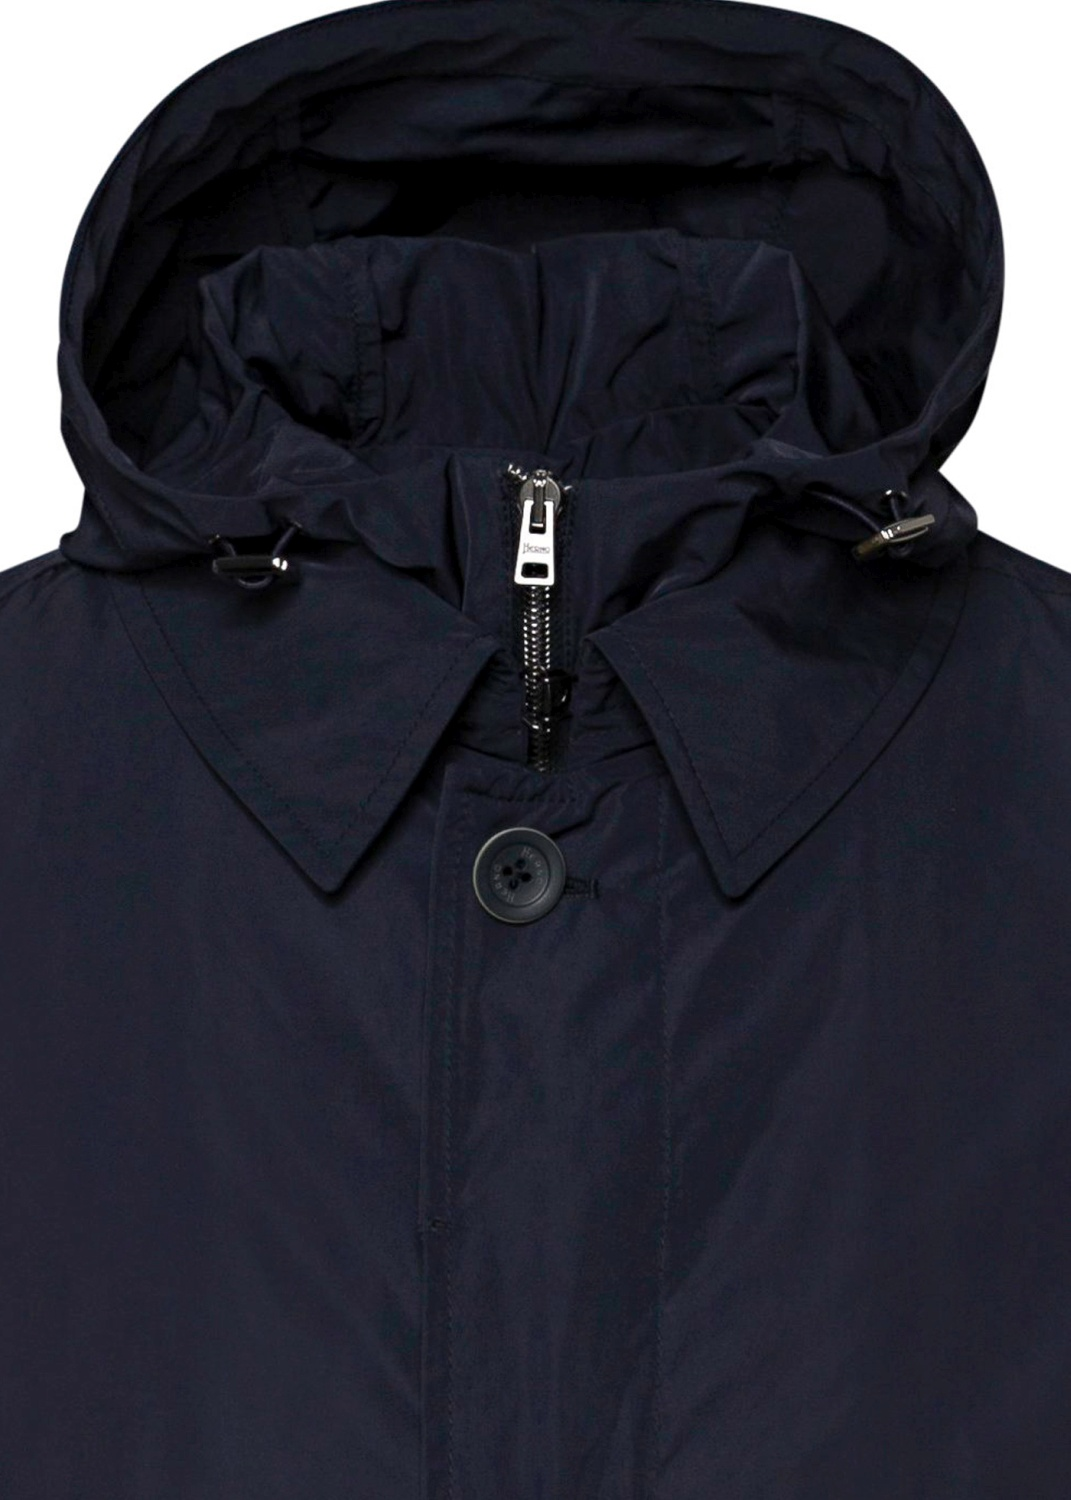 Men's Woven Raincoat image number 2